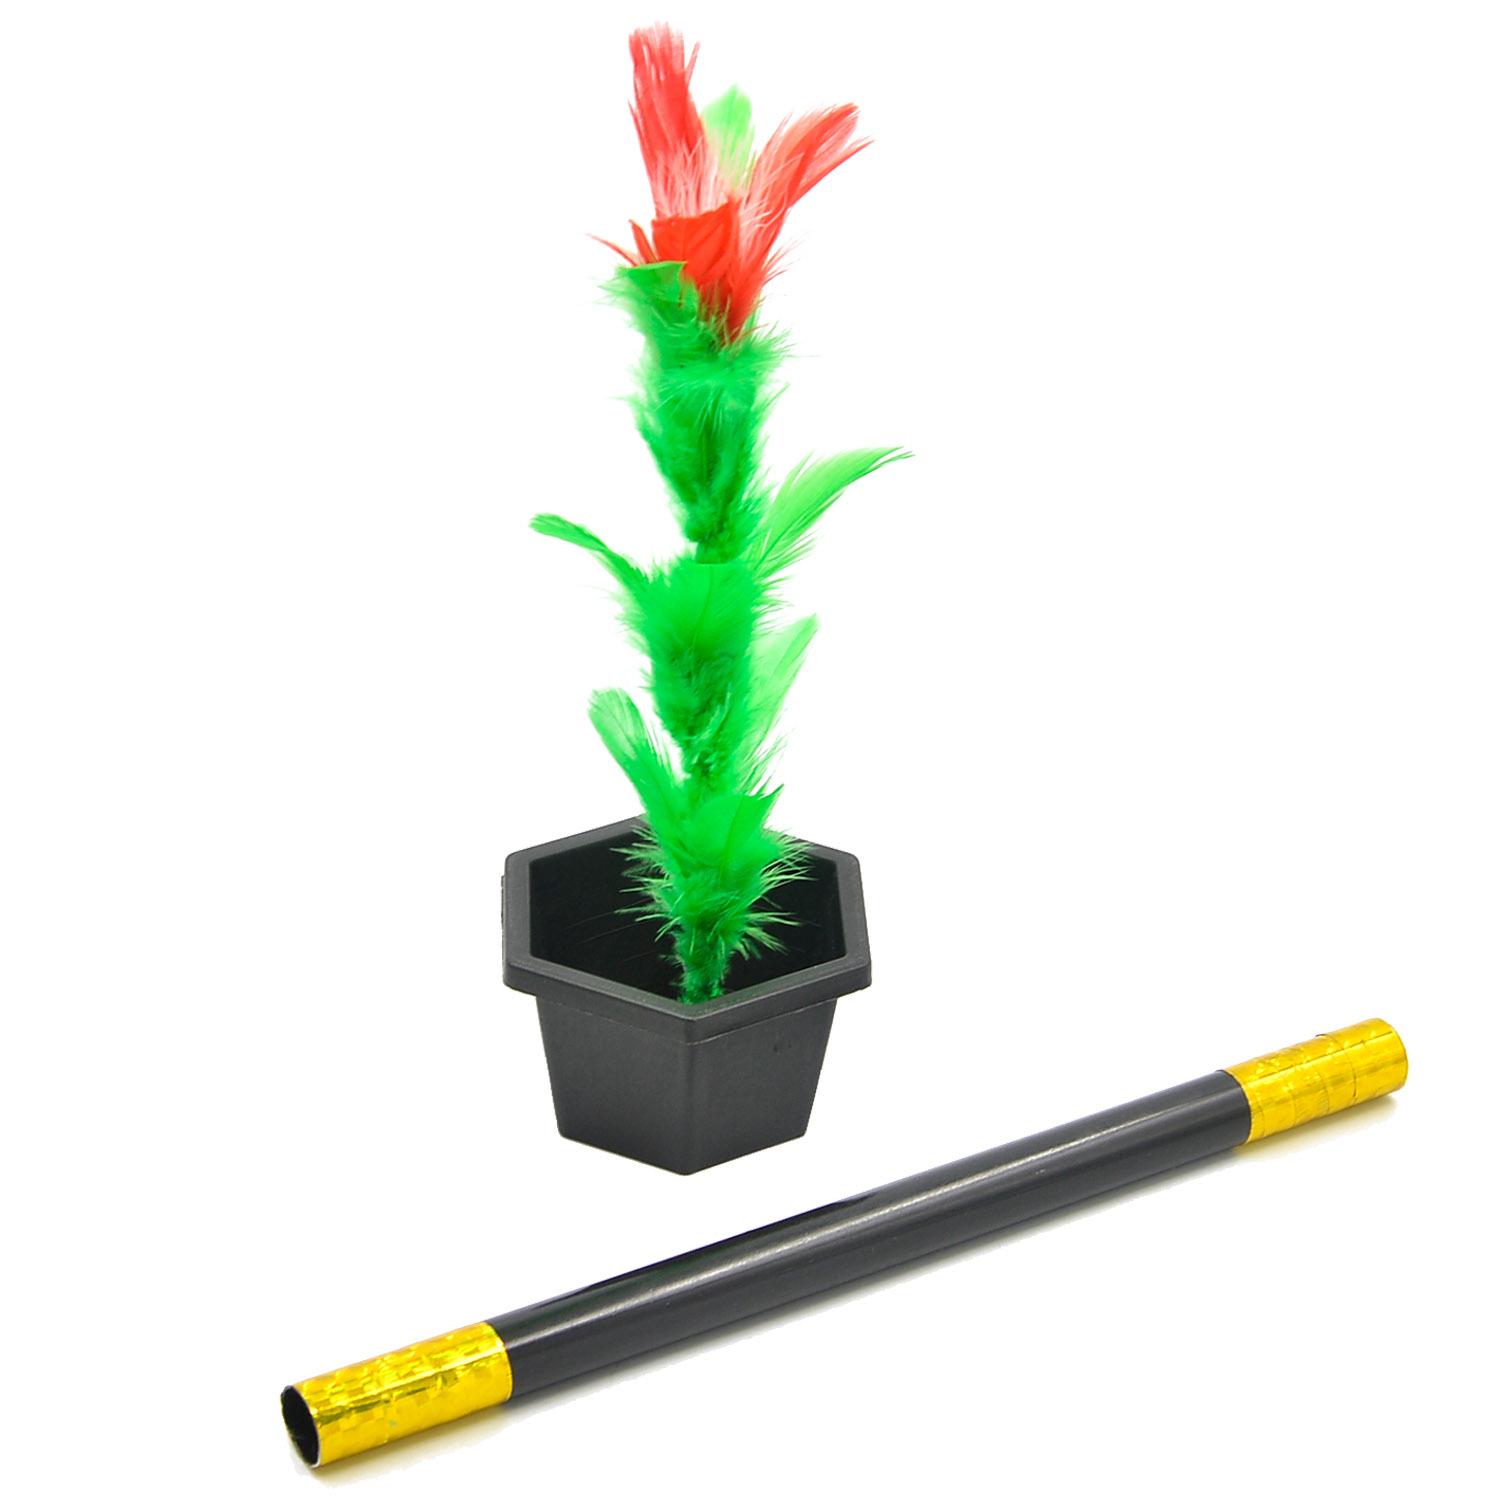 Magic Flower Stick Rod Pop up Flower Magic Props Magic Trick Magic Joke Toy Easy to Play for Kids Party Show